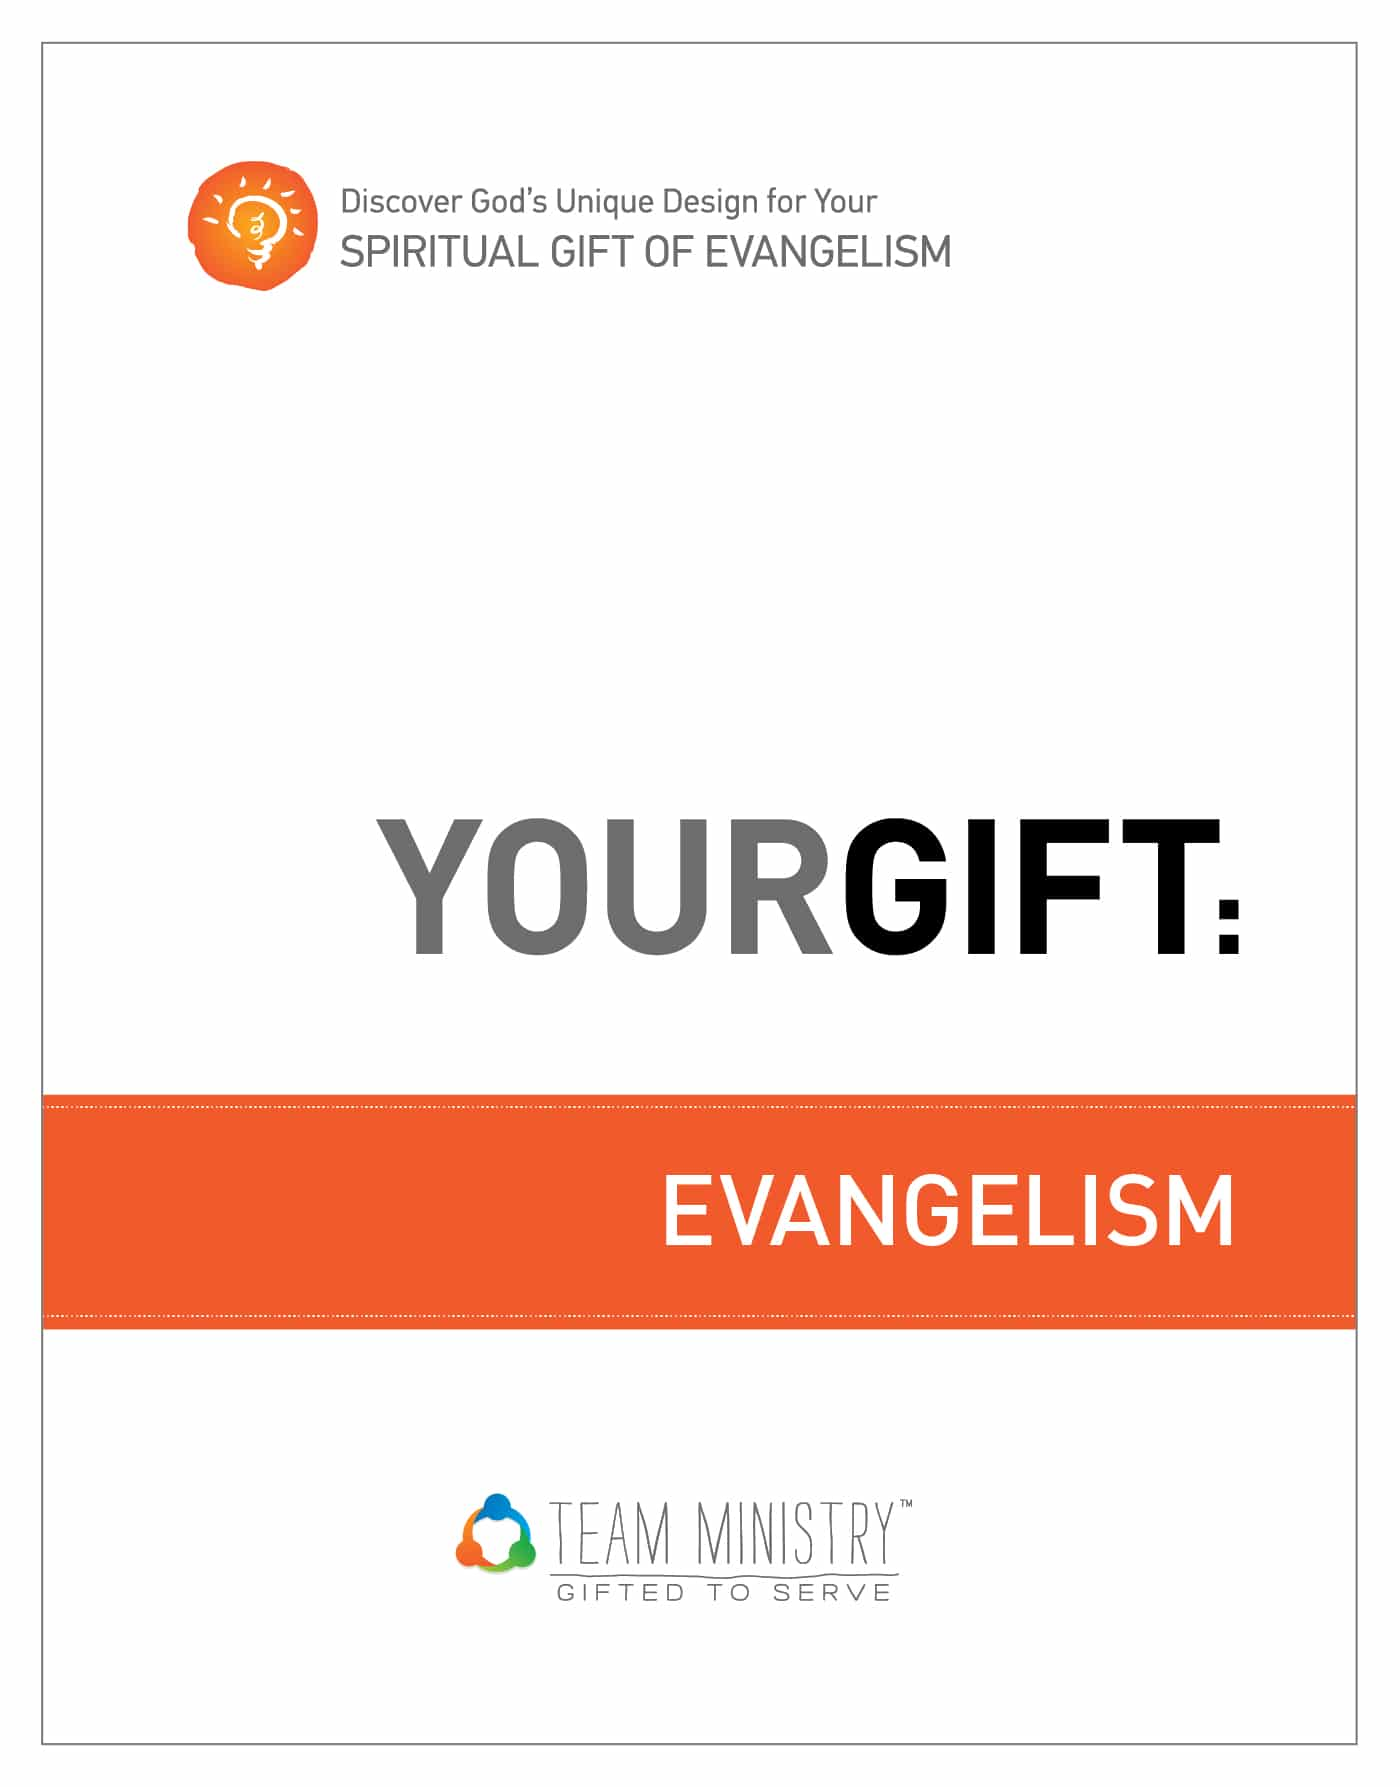 Church growth timeless tools for christian growth your gift evangelism discover gods unique design for your spiritual gift ebook instant pdf download fandeluxe Gallery